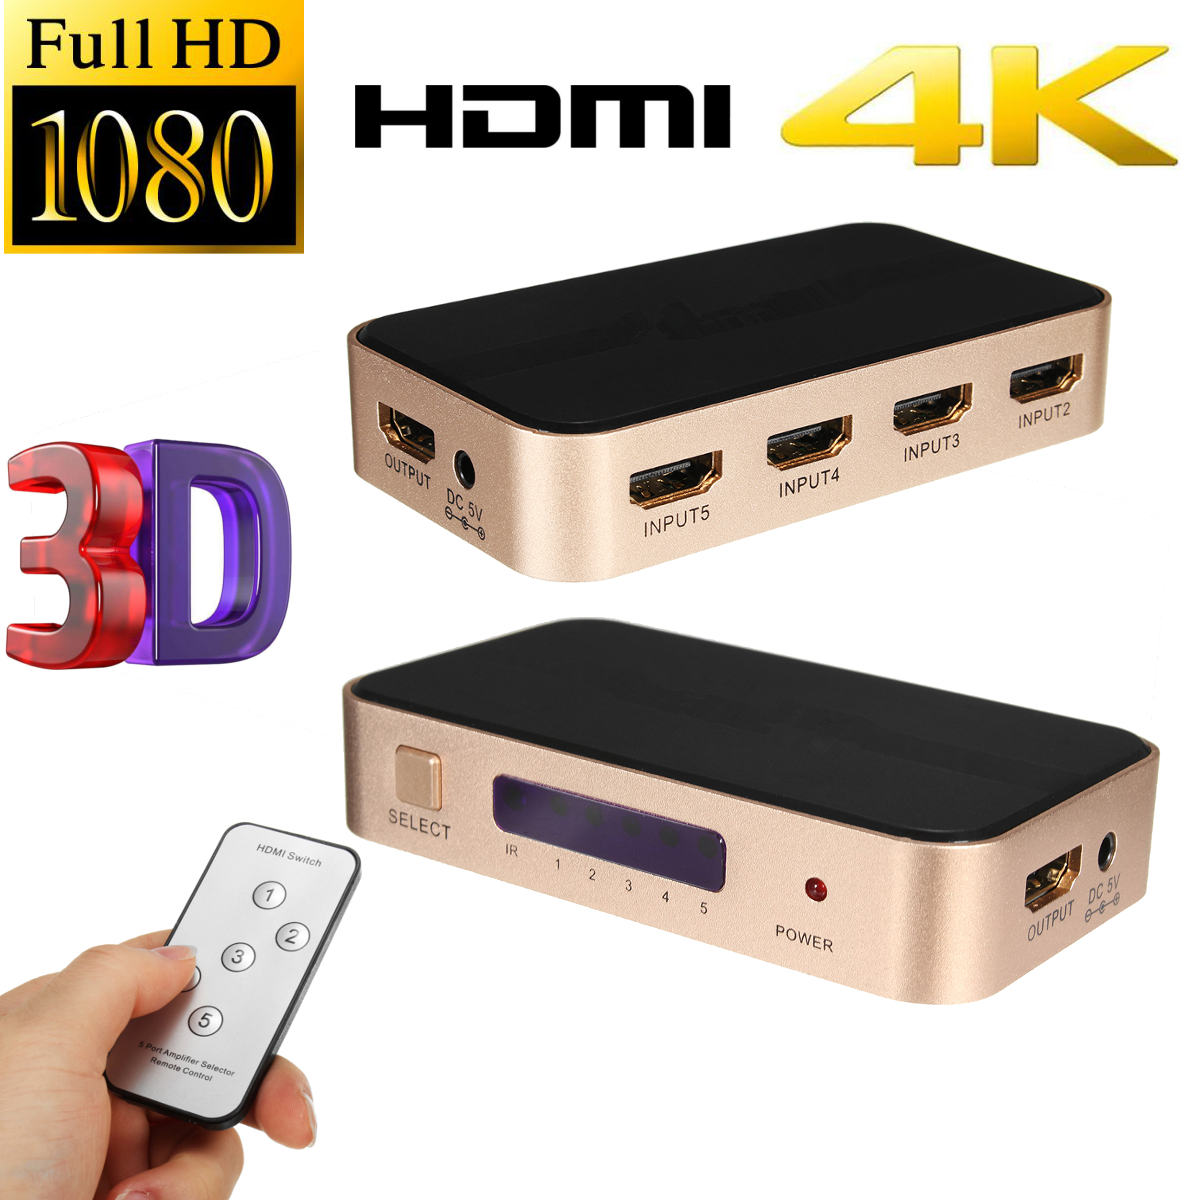 New 5Port 5x1 Full HD 1080P HDMI 1.4 10.2 Gbps 3D HDMI Switch Switcher Selector Splitter With Remote For HDTV For PS3 3 port hdmi switcher 3 way mini hdmi switcher